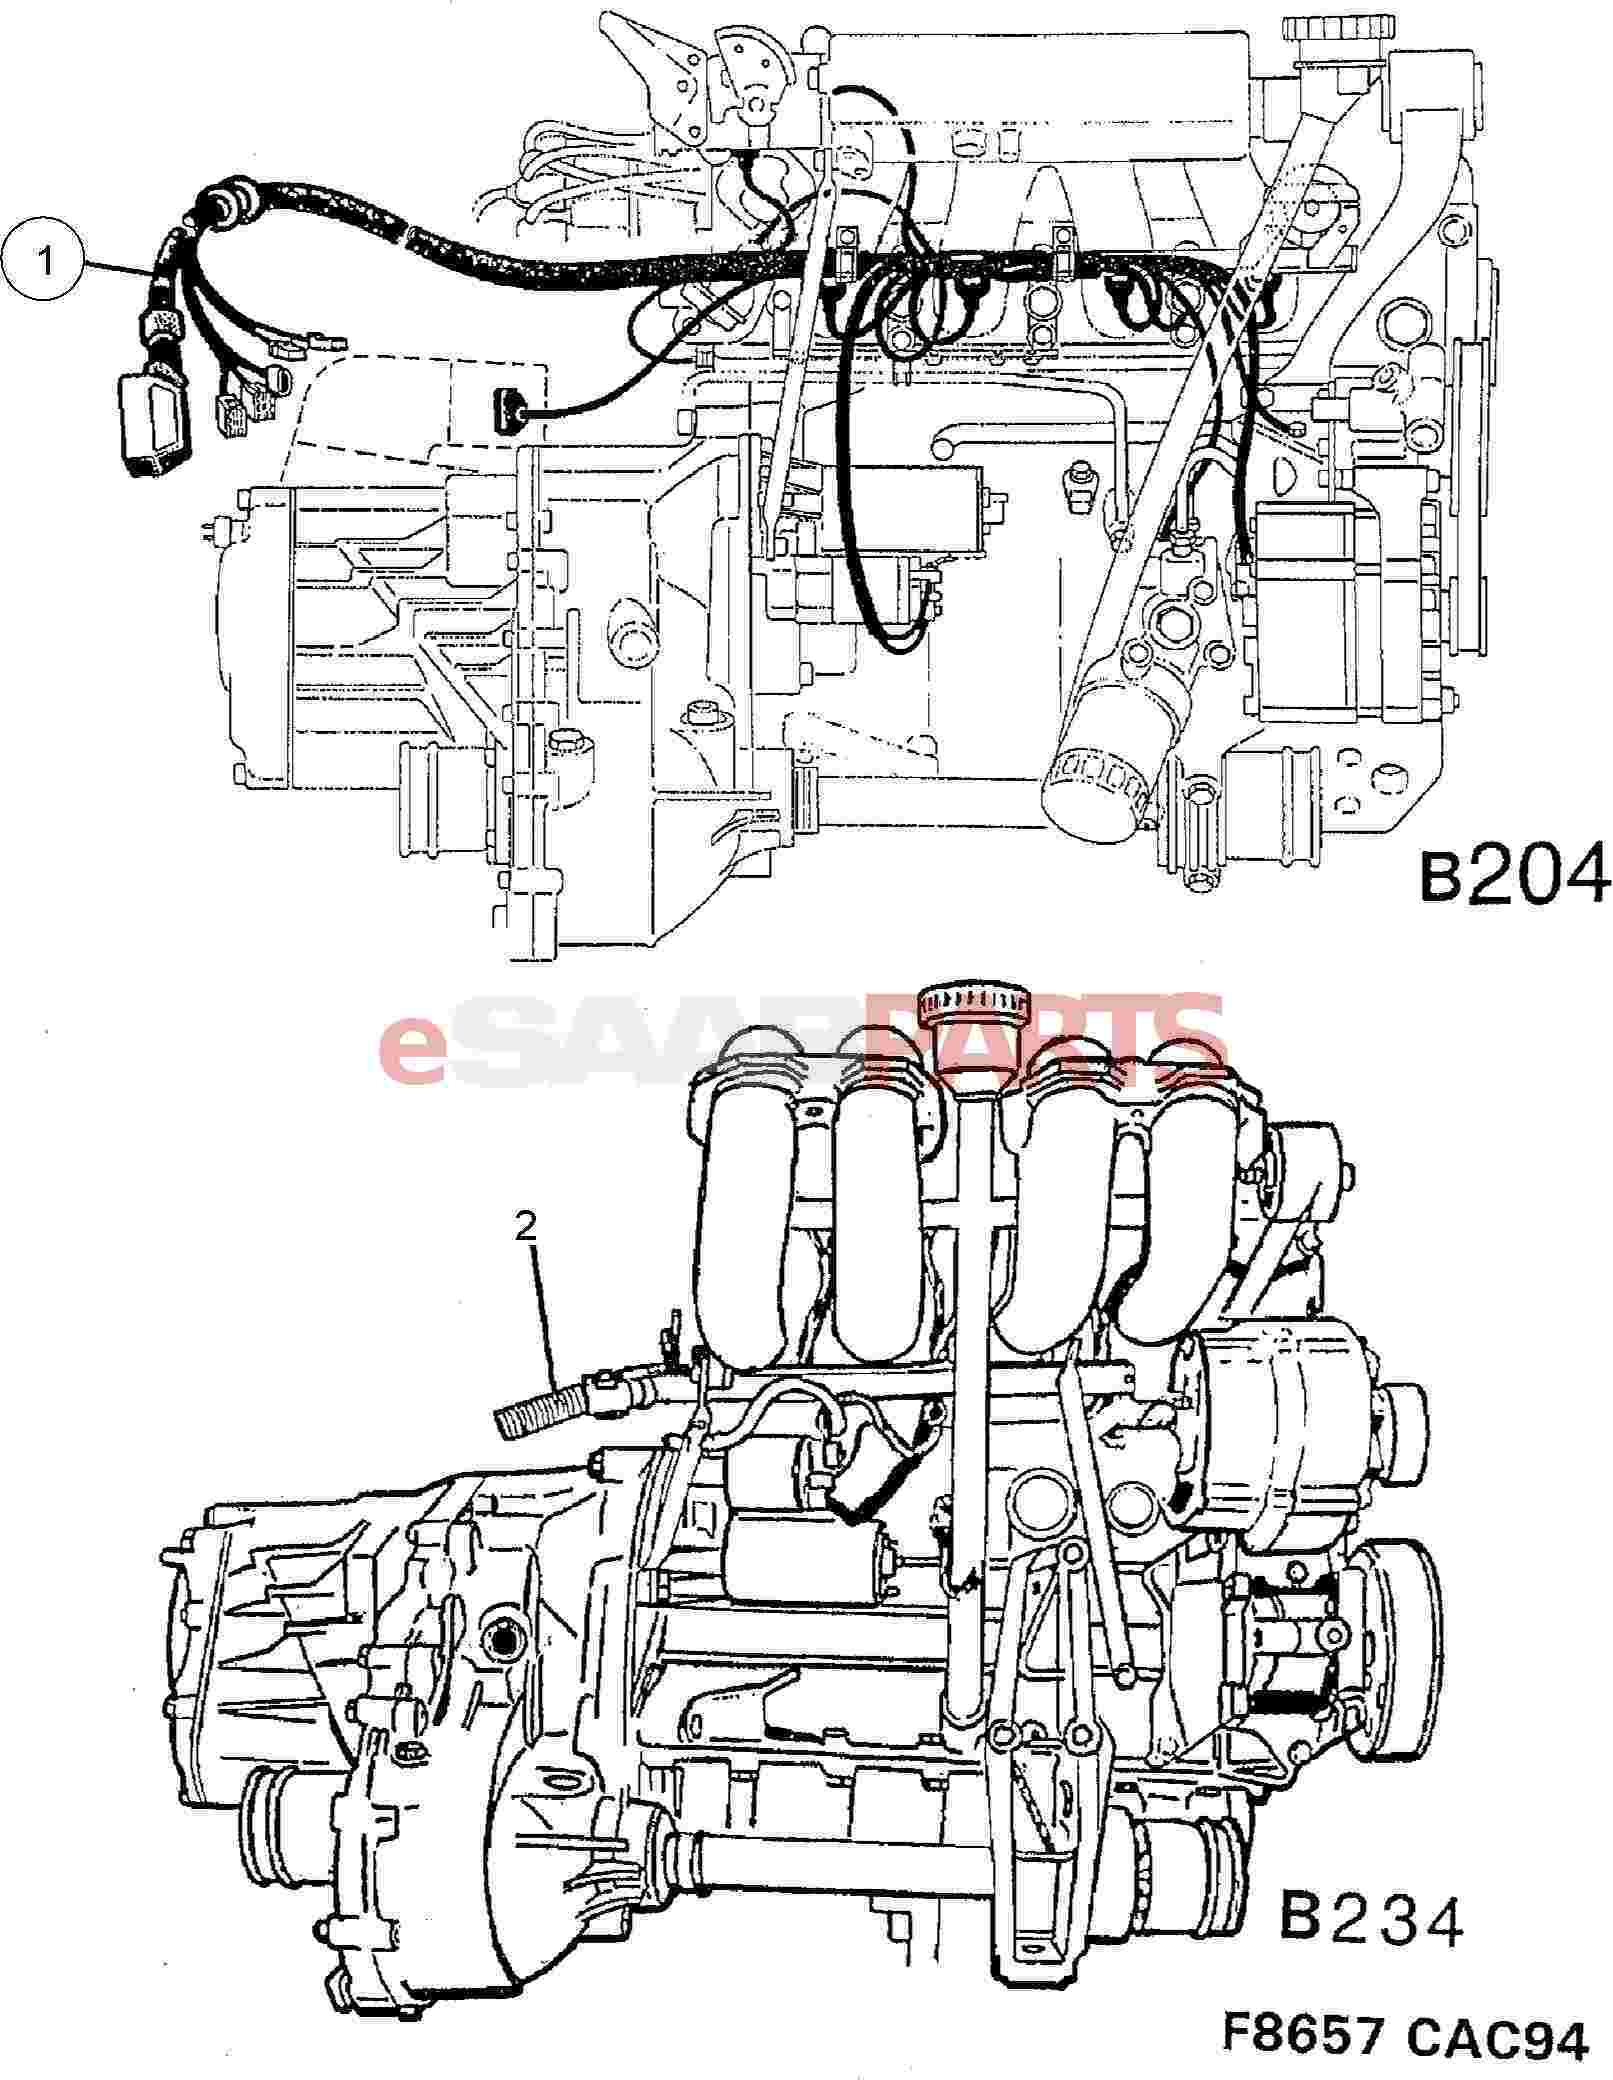 Saab B204 Wiring Diagram Schematic Diagrams For 1997 900 Engine Introduction To Electrical Amplifier Esaabparts Com